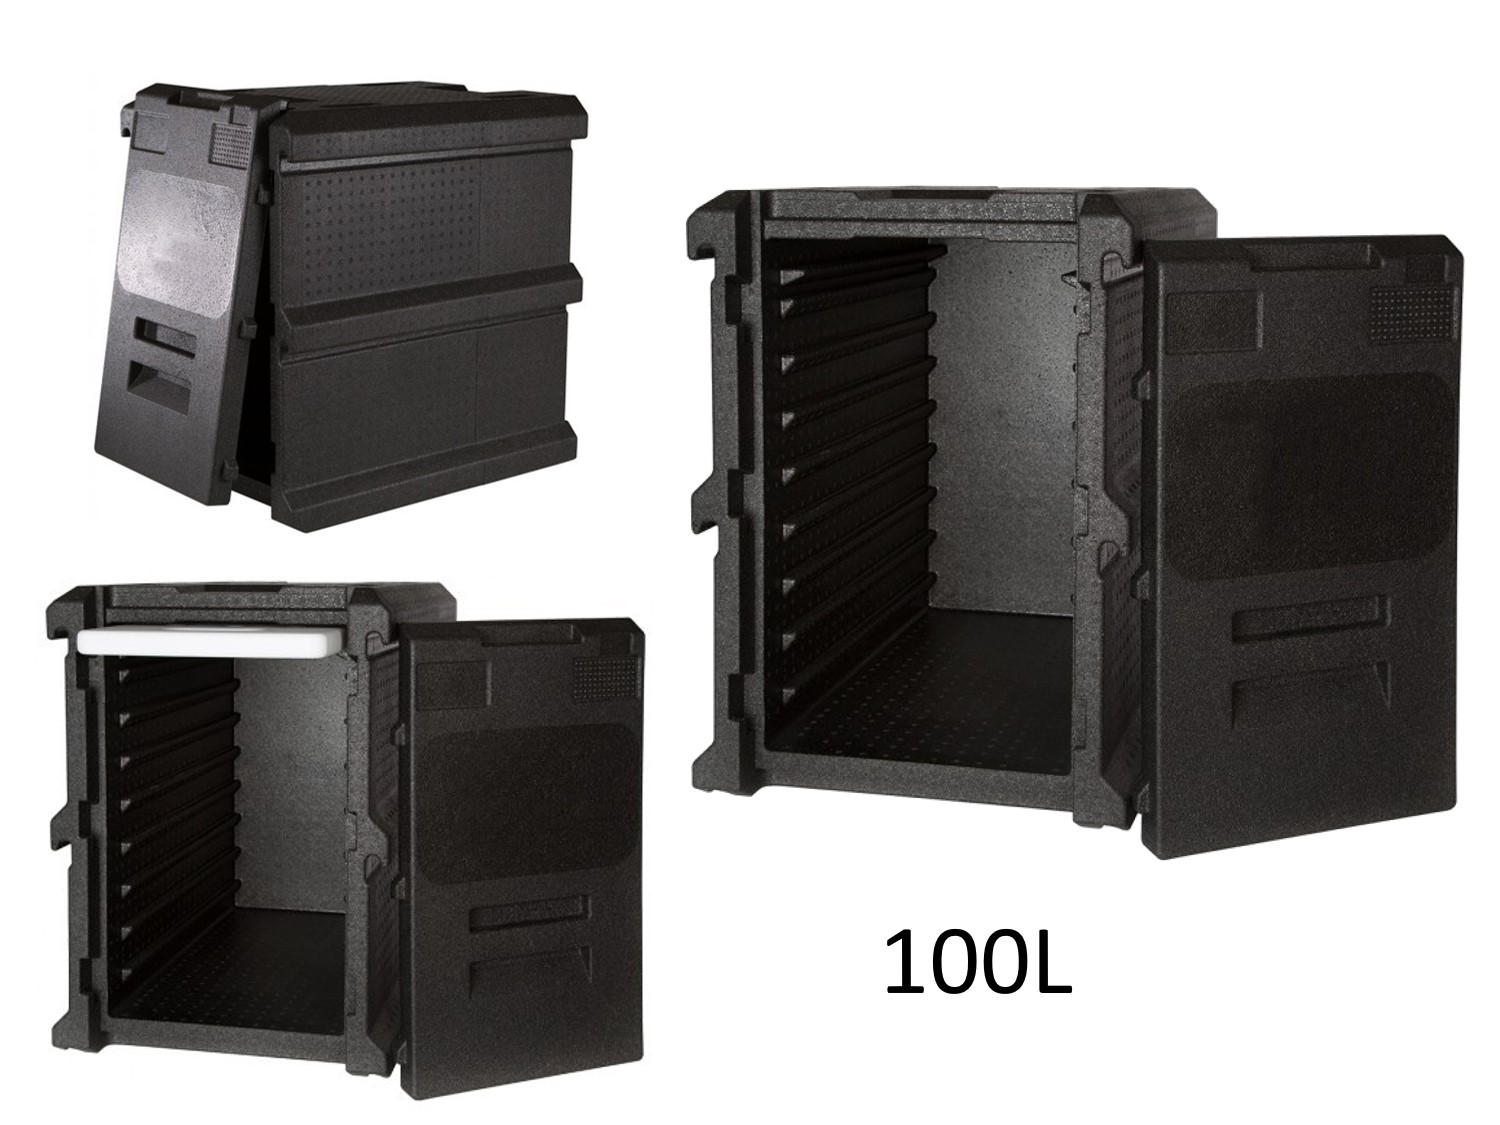 professional isothermal cooler, boxes with front opening GN 1/1 format 600 x 400 100L DISTRIFRESH COLD & CO